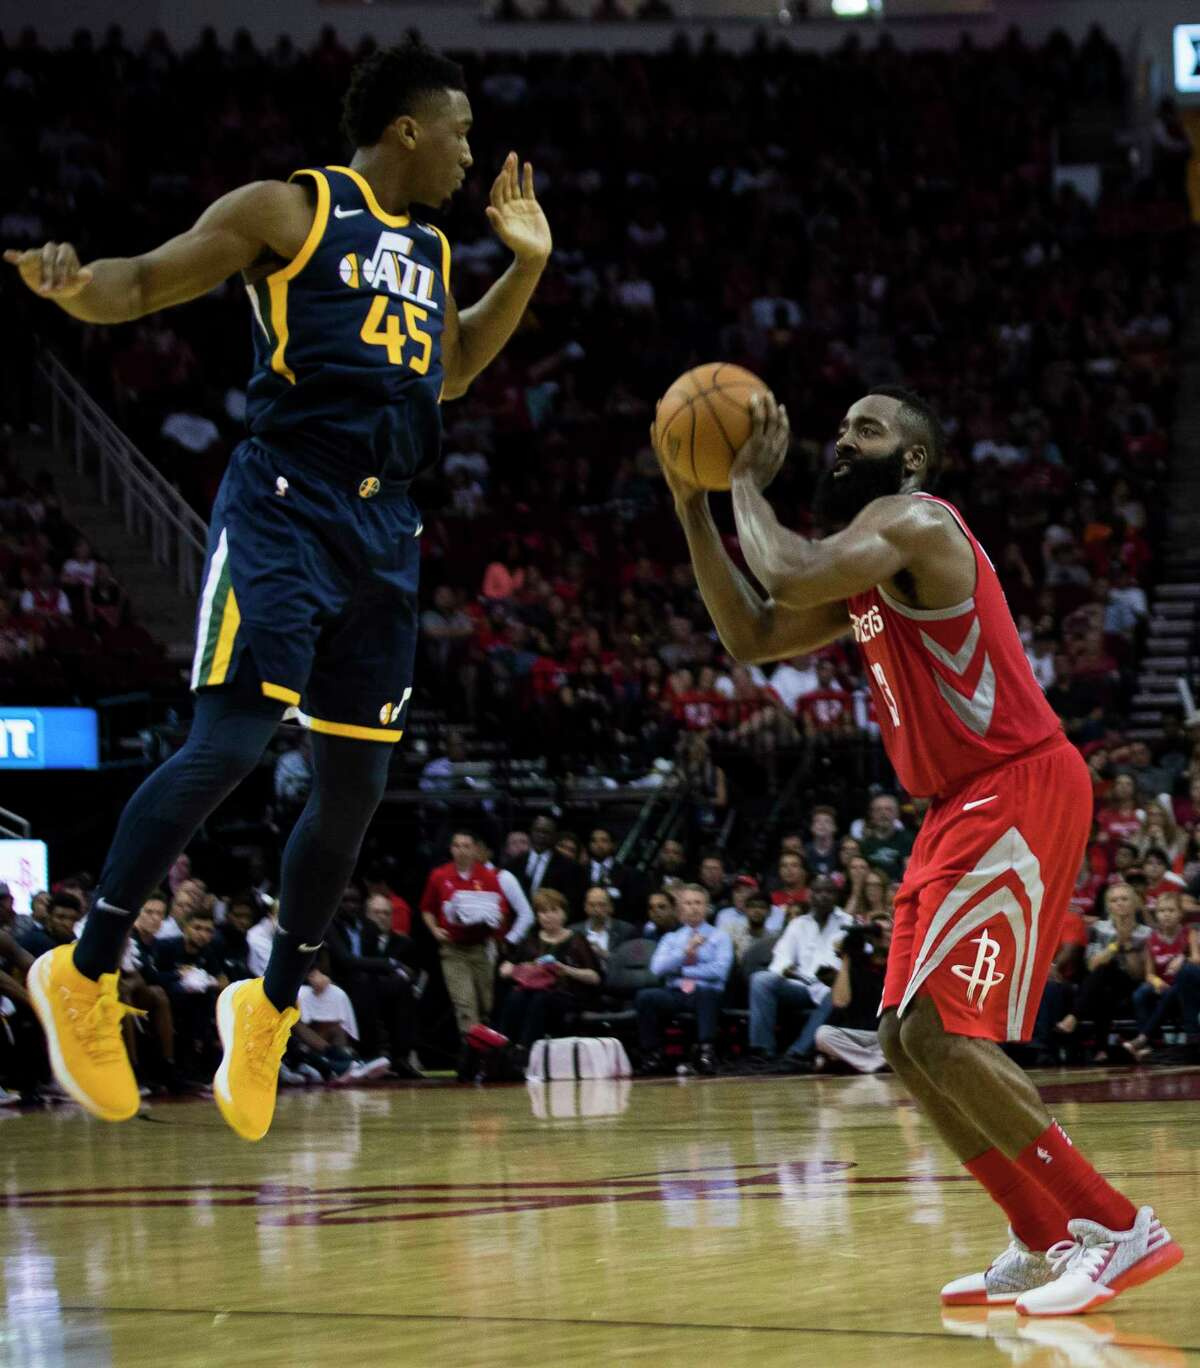 Rockets guard James Harden, right, shoots the ball under pressure from Utah guard Donovan Mitchell. Harden finished with a career-high 56 points - one point shy of Calvin Murphy's franchise record.